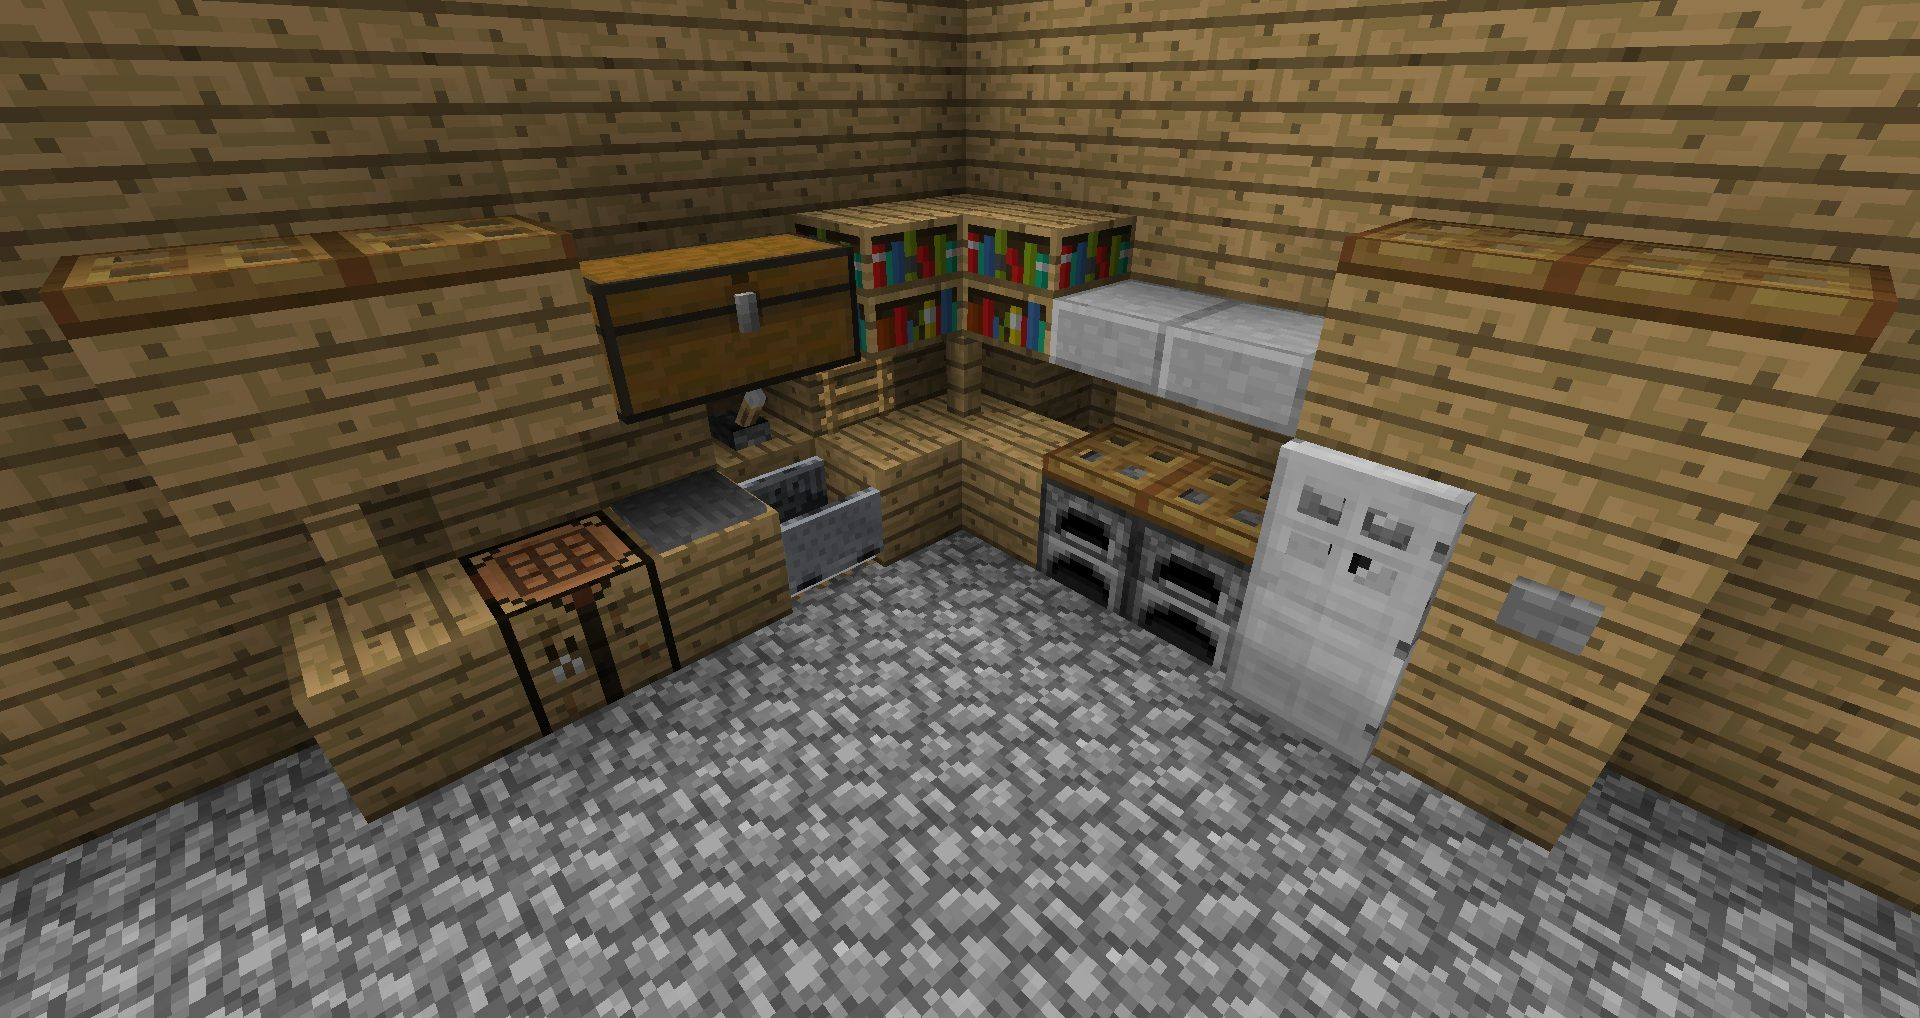 A minecraft kitchen can have no uses at all being idiotic and stylish